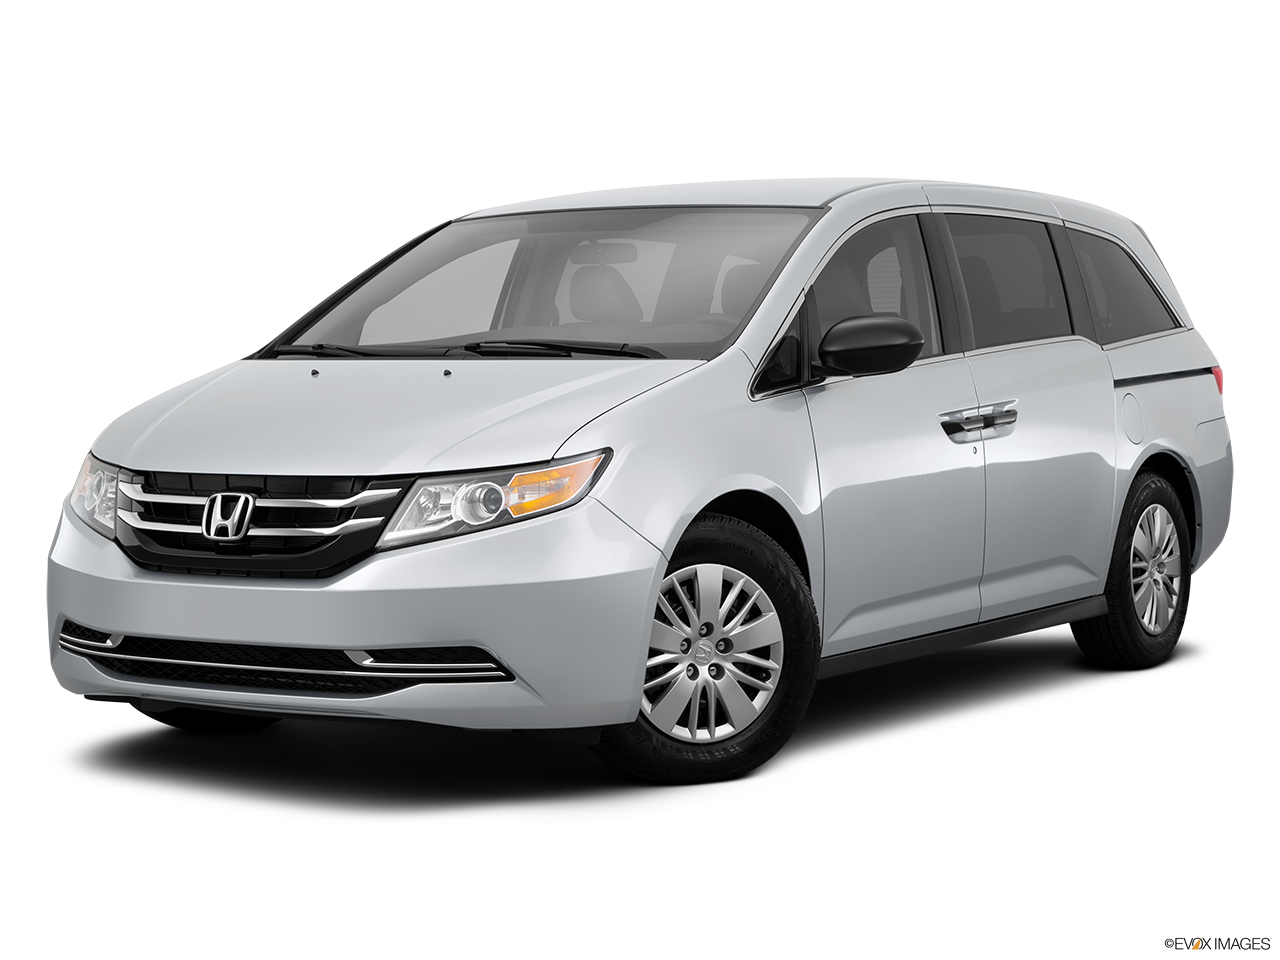 2016 Honda Odyssey Diagram Great Engine Wiring Schematic 2011 Data Rh 1 17 14 Reisen Fuer Meister De Body Parts